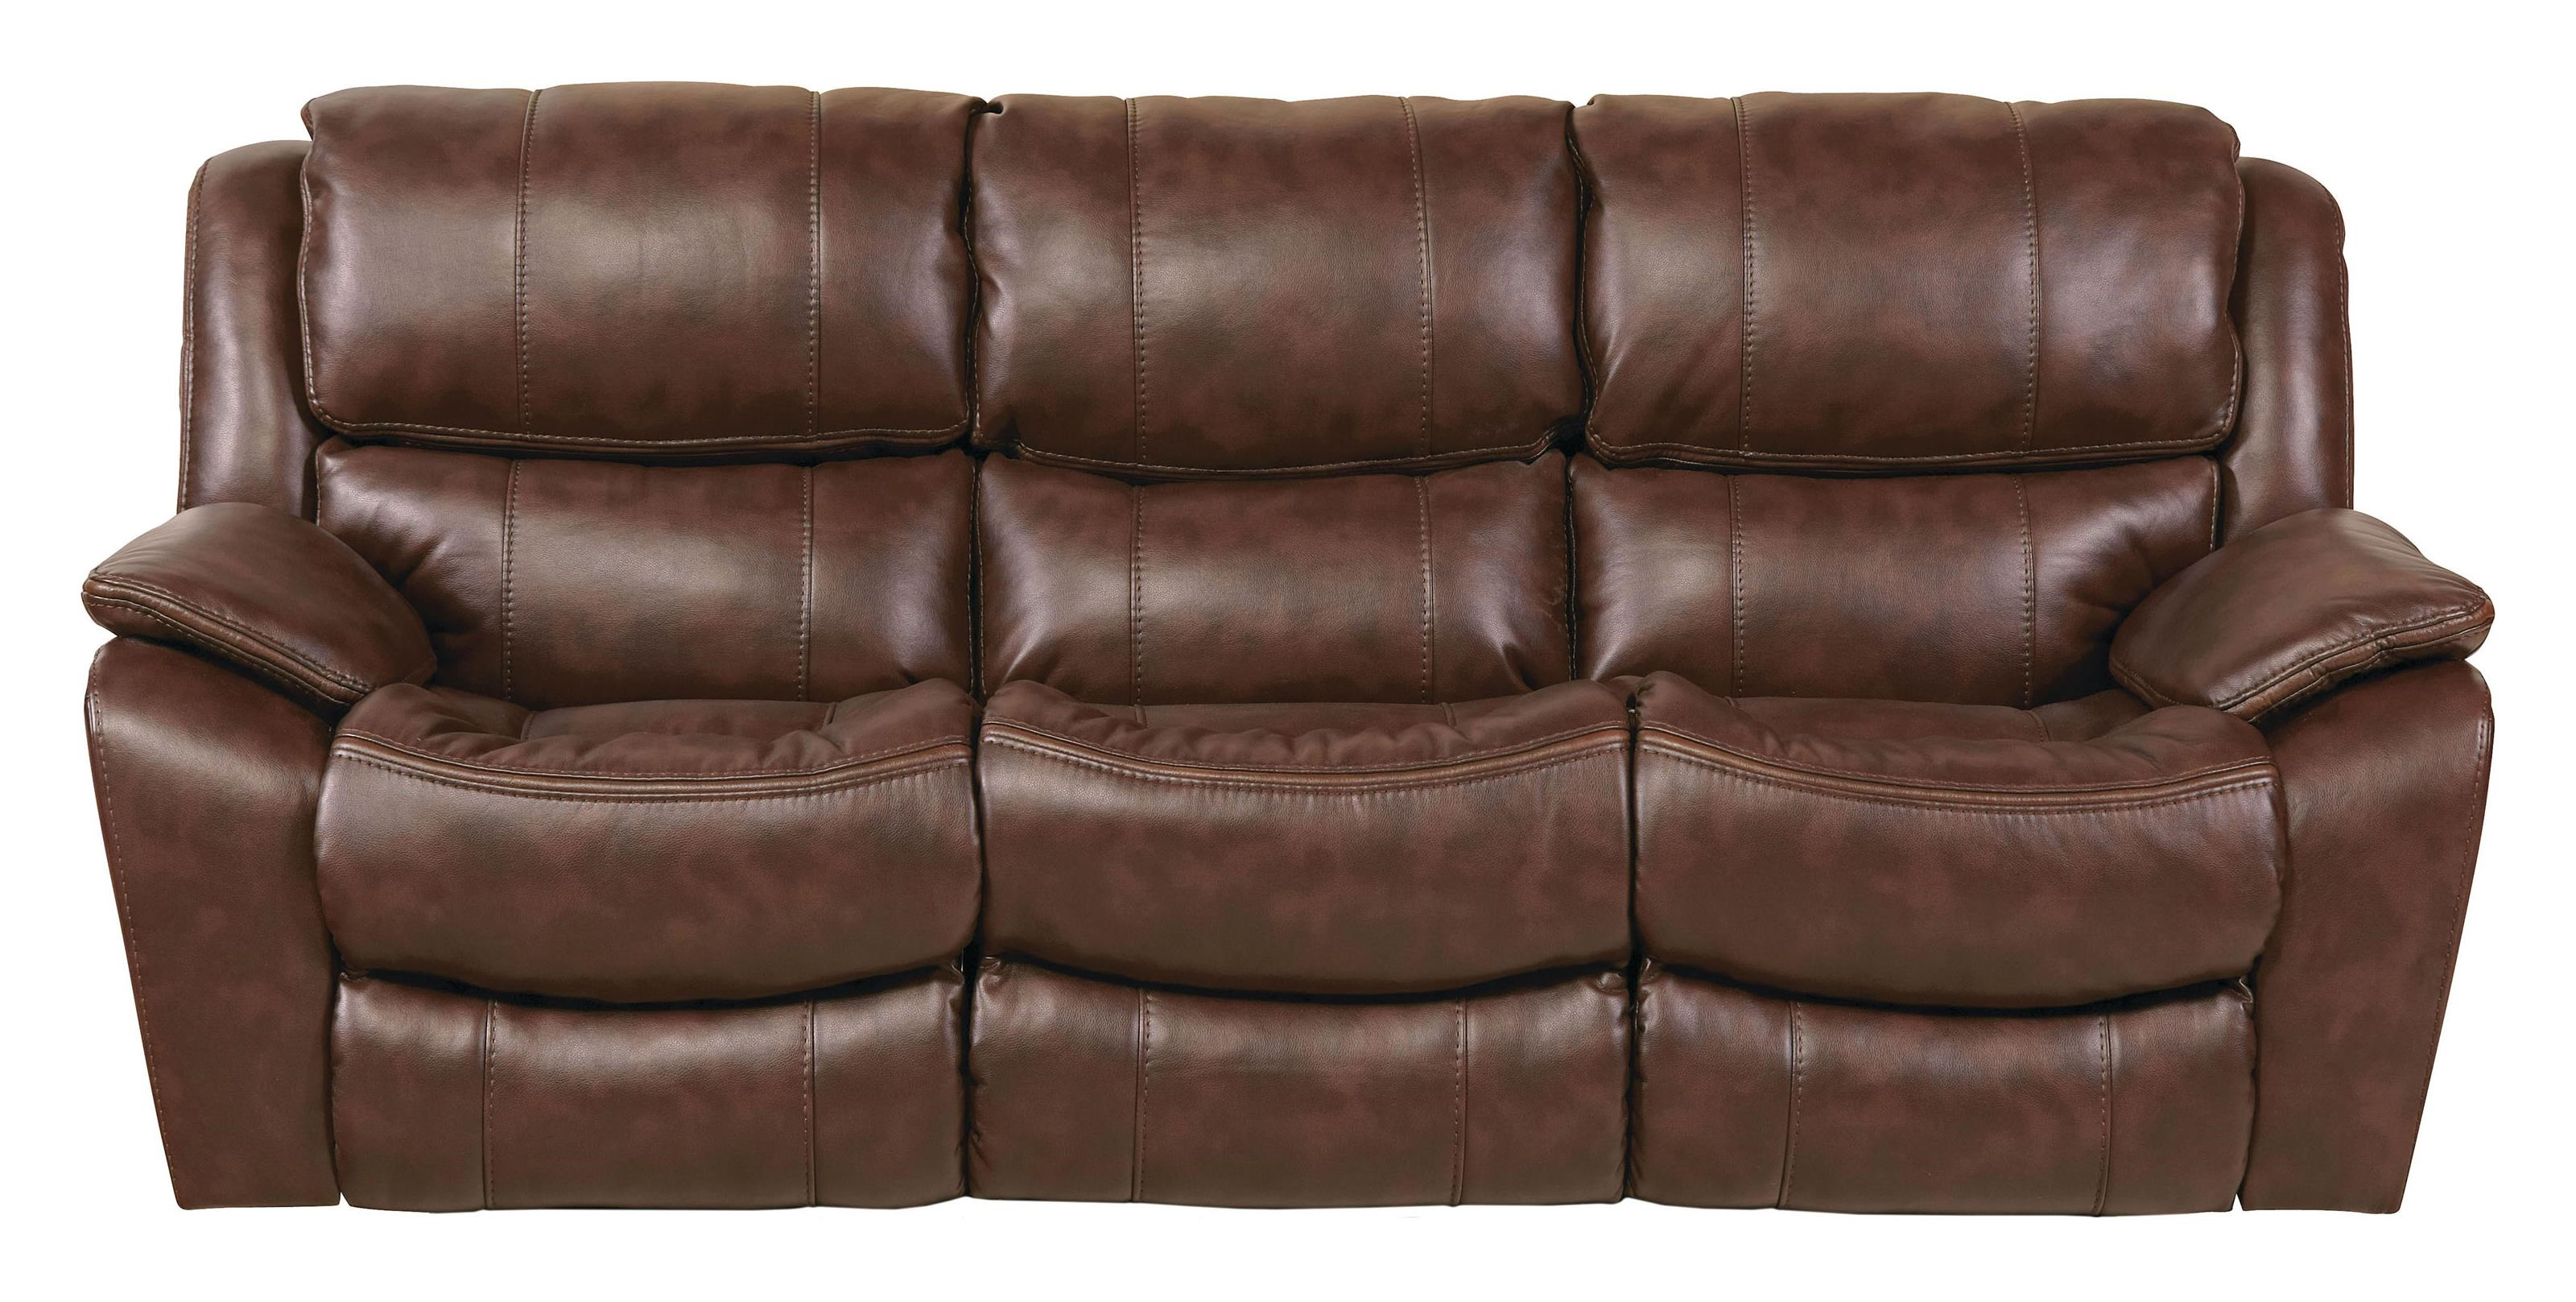 Catnapper BeckettReclining Sofa; Catnapper BeckettReclining Sofa